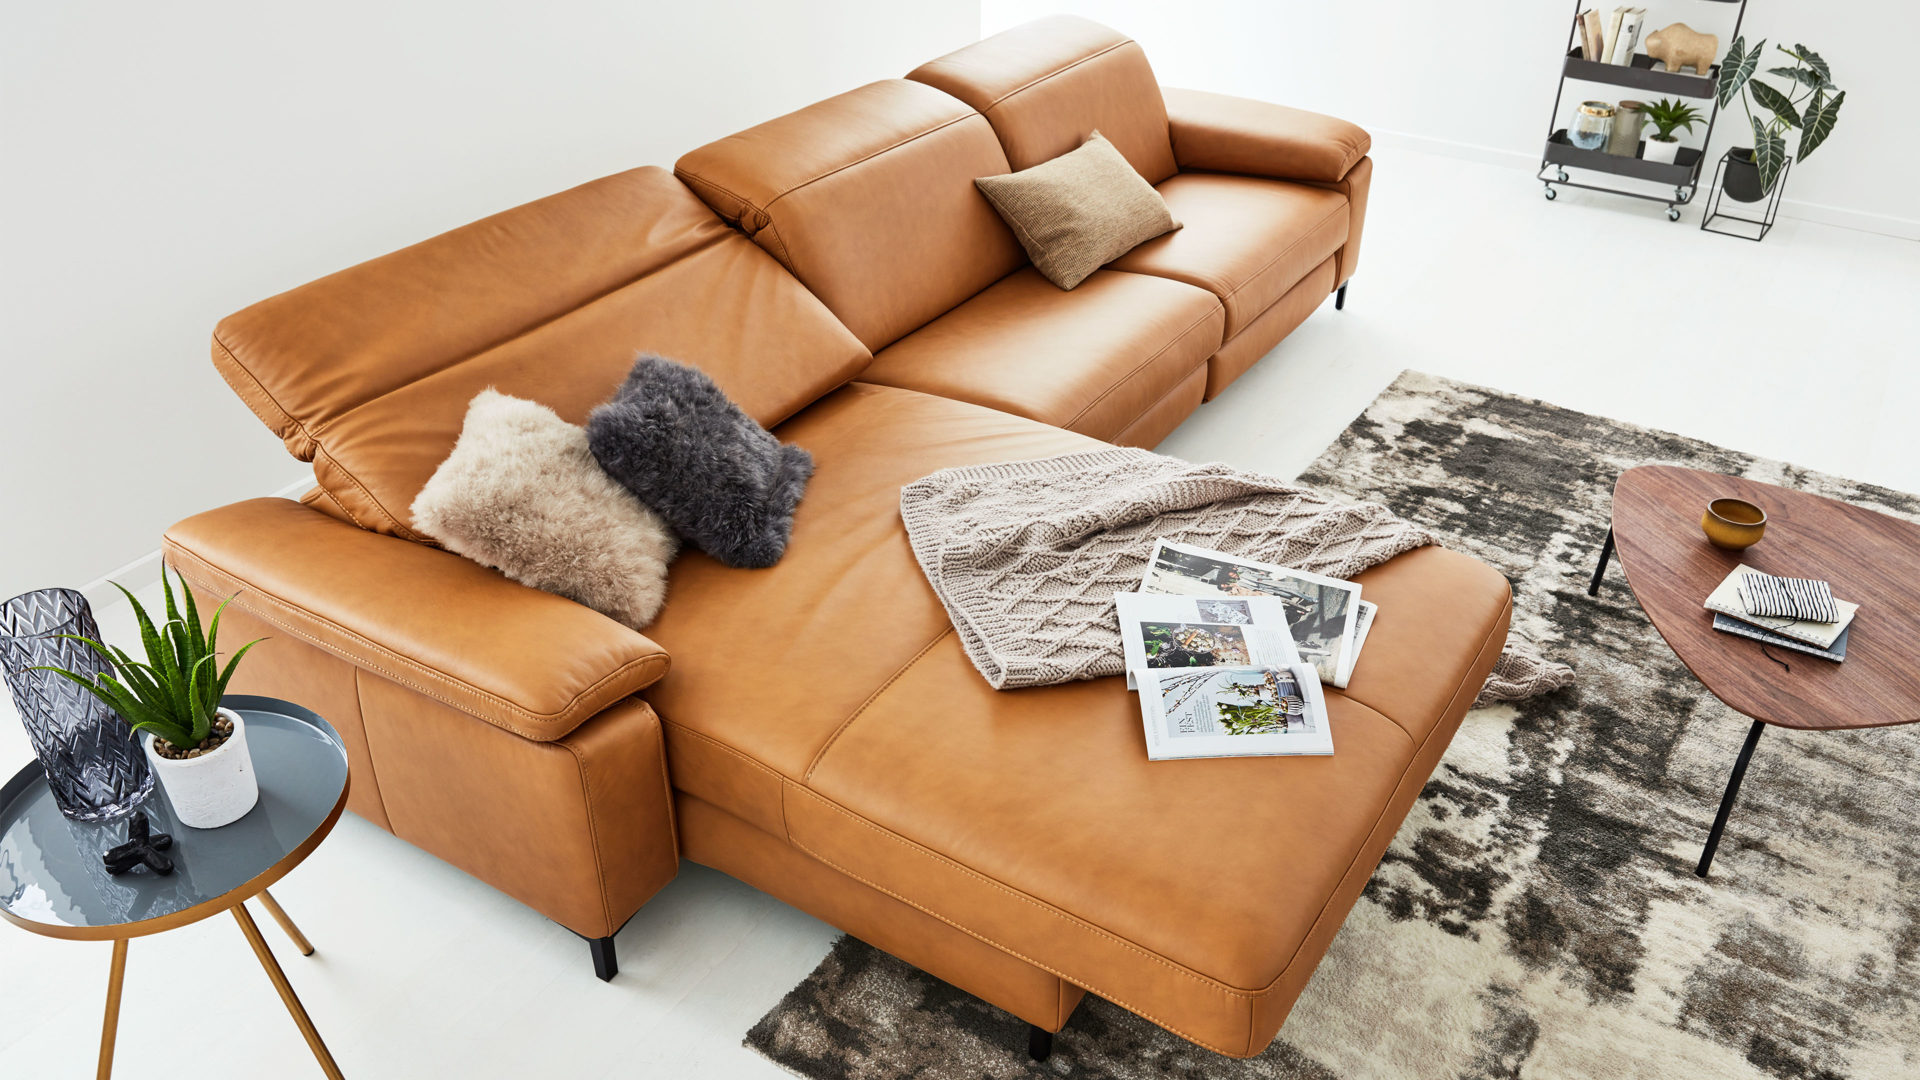 Ecksofa Interliving aus Leder in Gelb Interliving Sofa Serie 4054 – Ecksofa mit Relaxfunktion kurkumafarbenes Leder Vivre & schwarze Metallfüße – Stellfläche ca. 176 x 347 cm